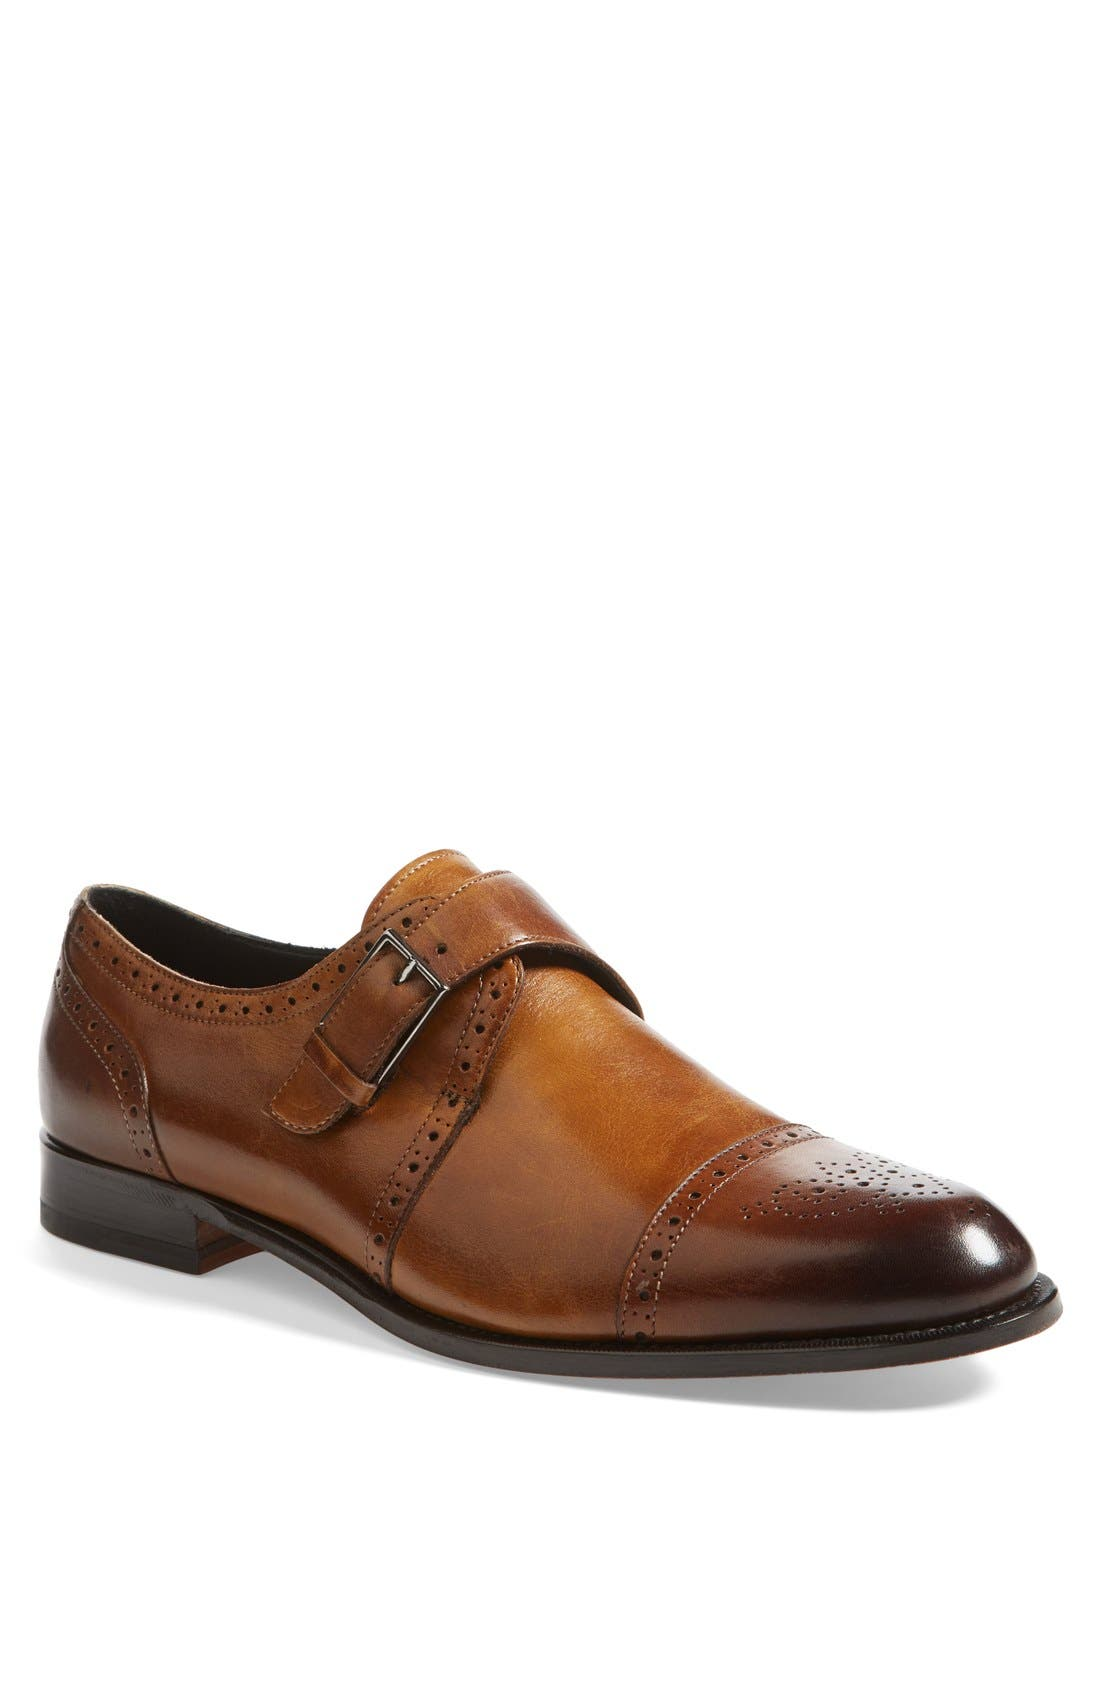 Alternate Image 1 Selected - Bruno Magli 'Rovani' Monk Shoe